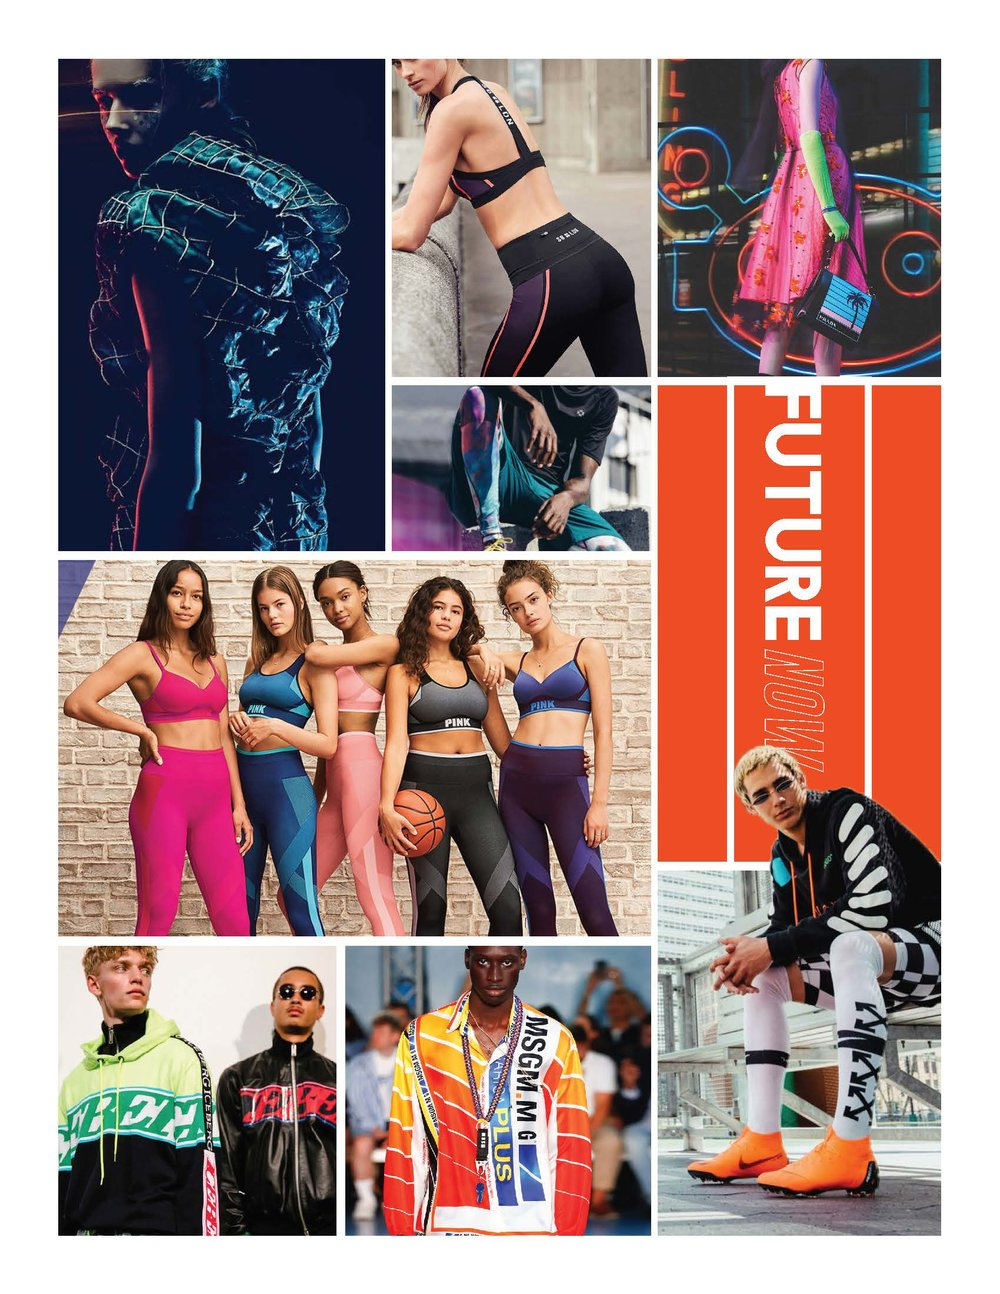 Present meets Future - Bringing futuristic runway trends into our active lifestyle.